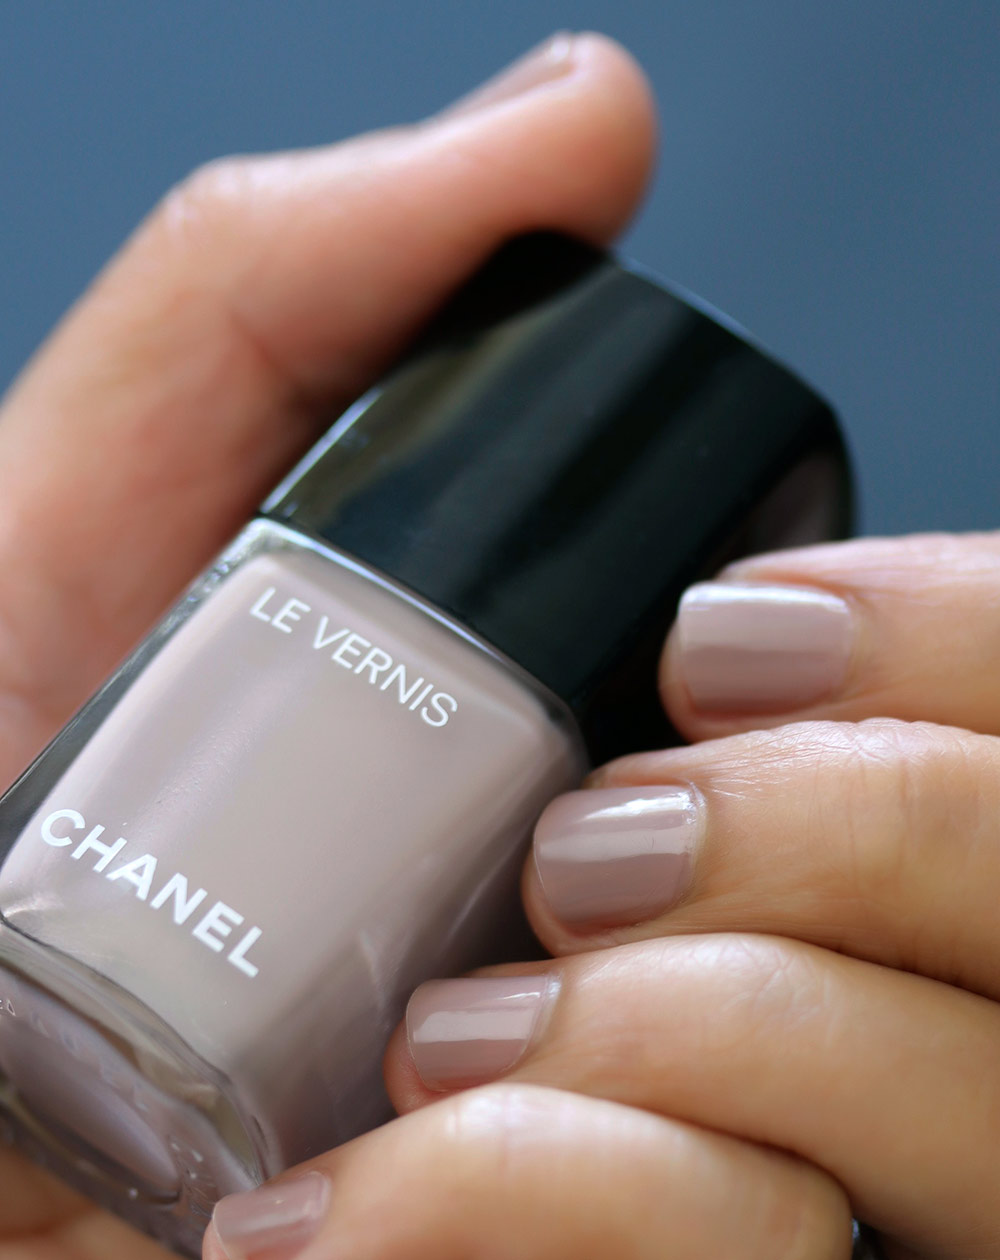 Chanel New Dawn Le Vernis Longwear Nail Colour - Makeup and Beauty Blog